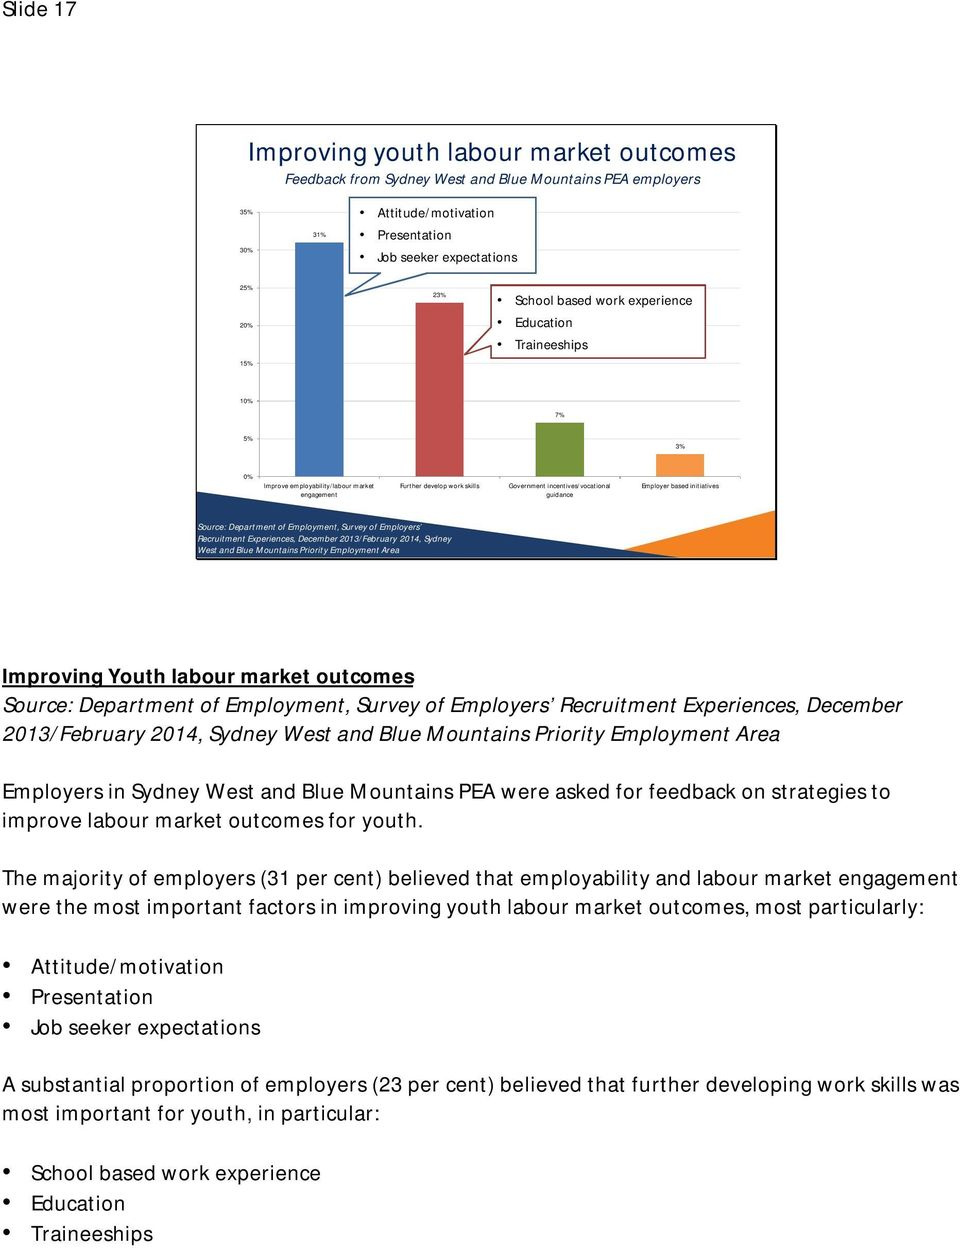 initiatives Source: Department of Employment, Survey of Employers Recruitment Experiences, December 2013/February 2014, Sydney West and Blue Mountains Priority Employment Area Improving Youth labour